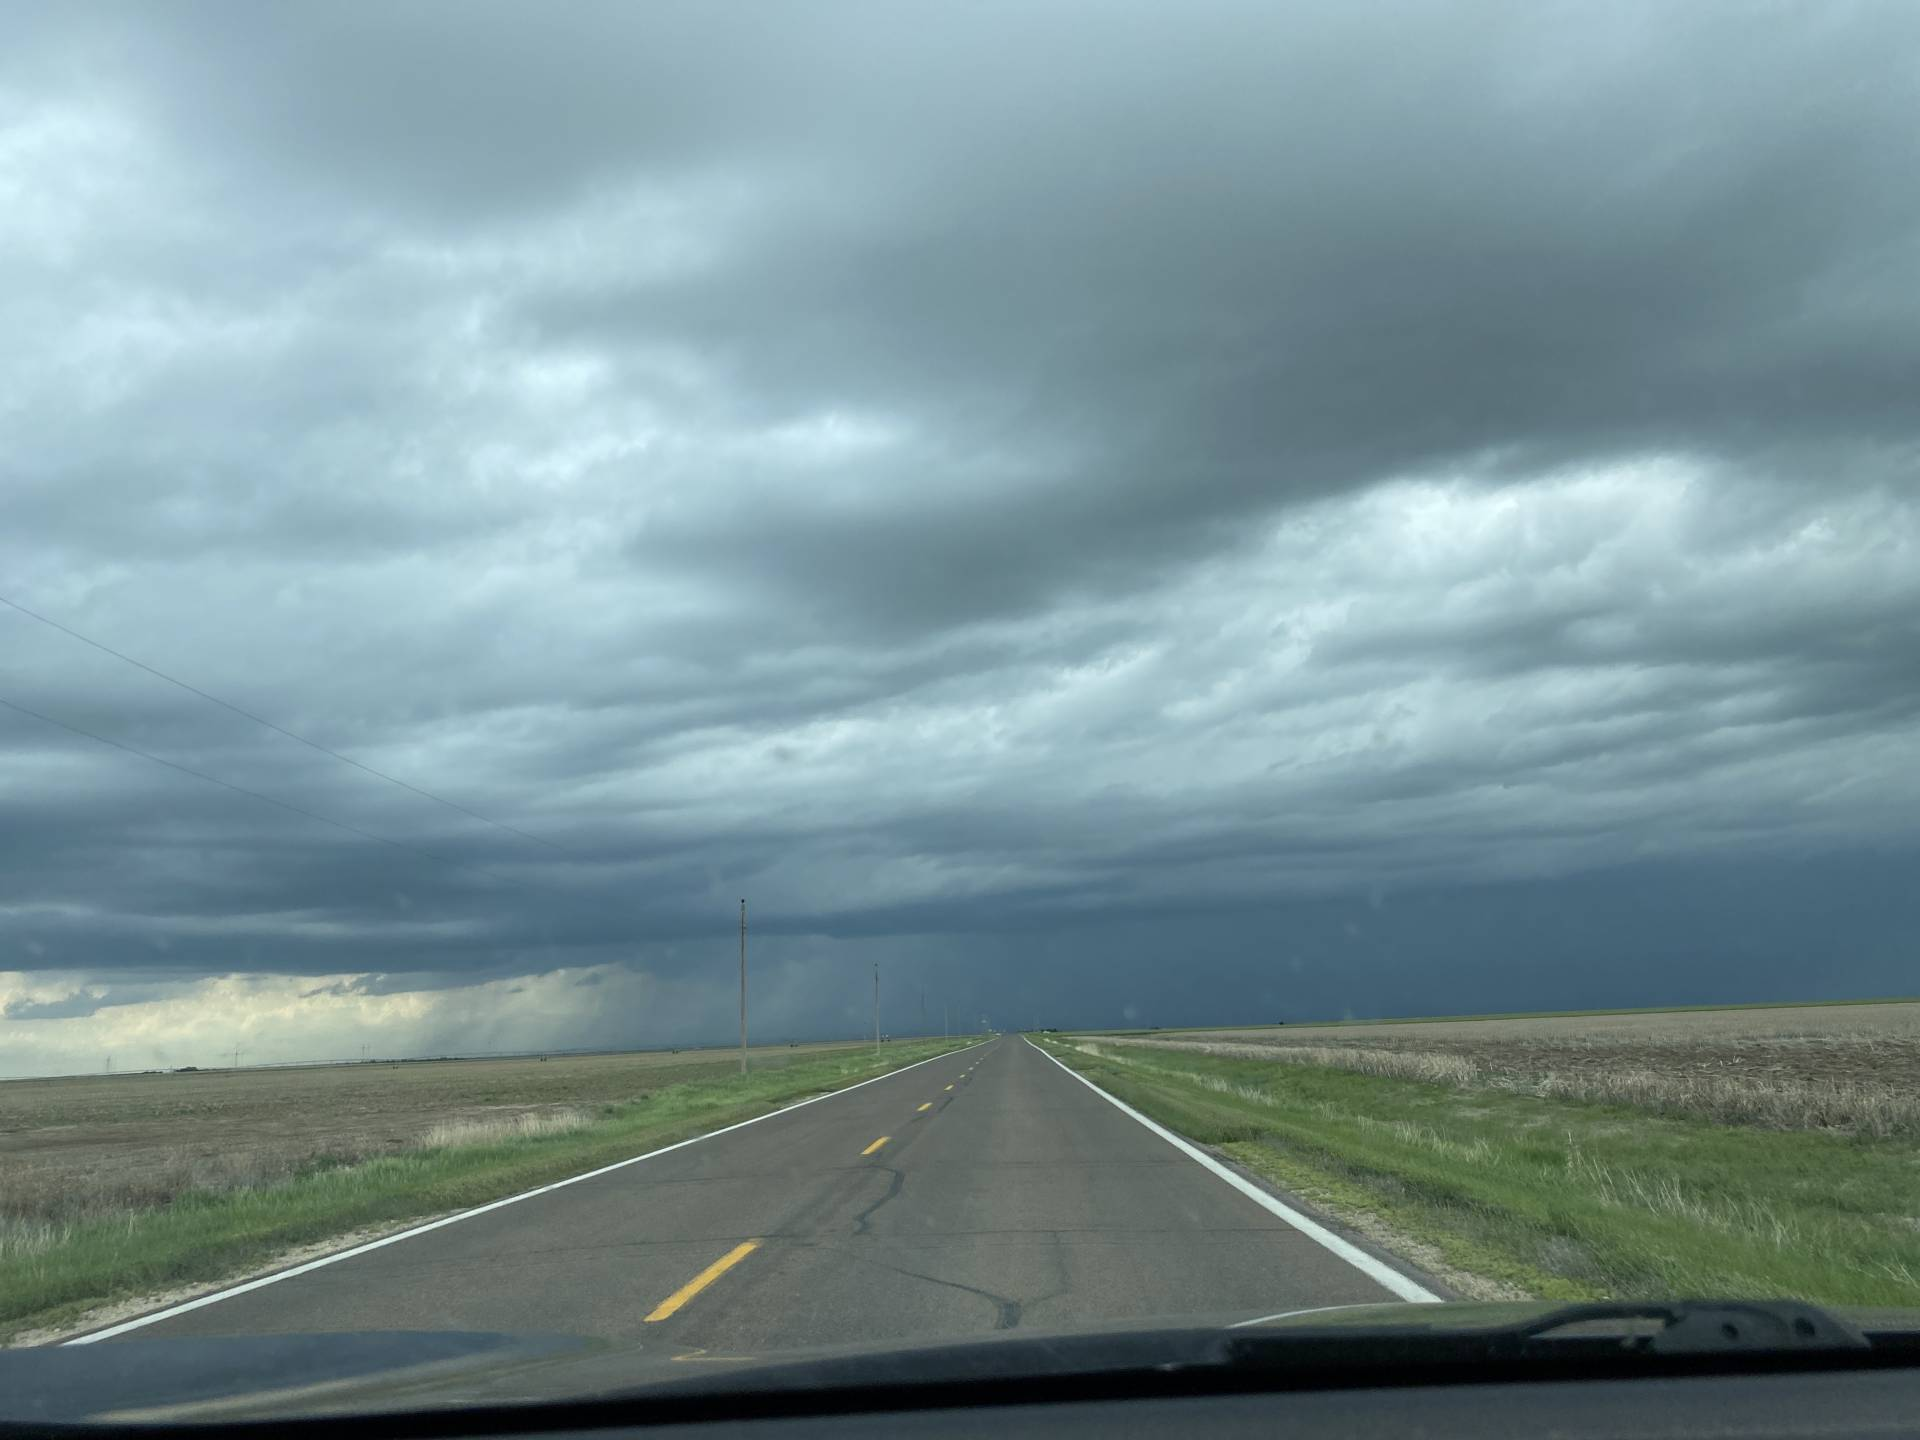 Attempting new development north of Grainfjj iie ld other storms couldn't battle the cap.